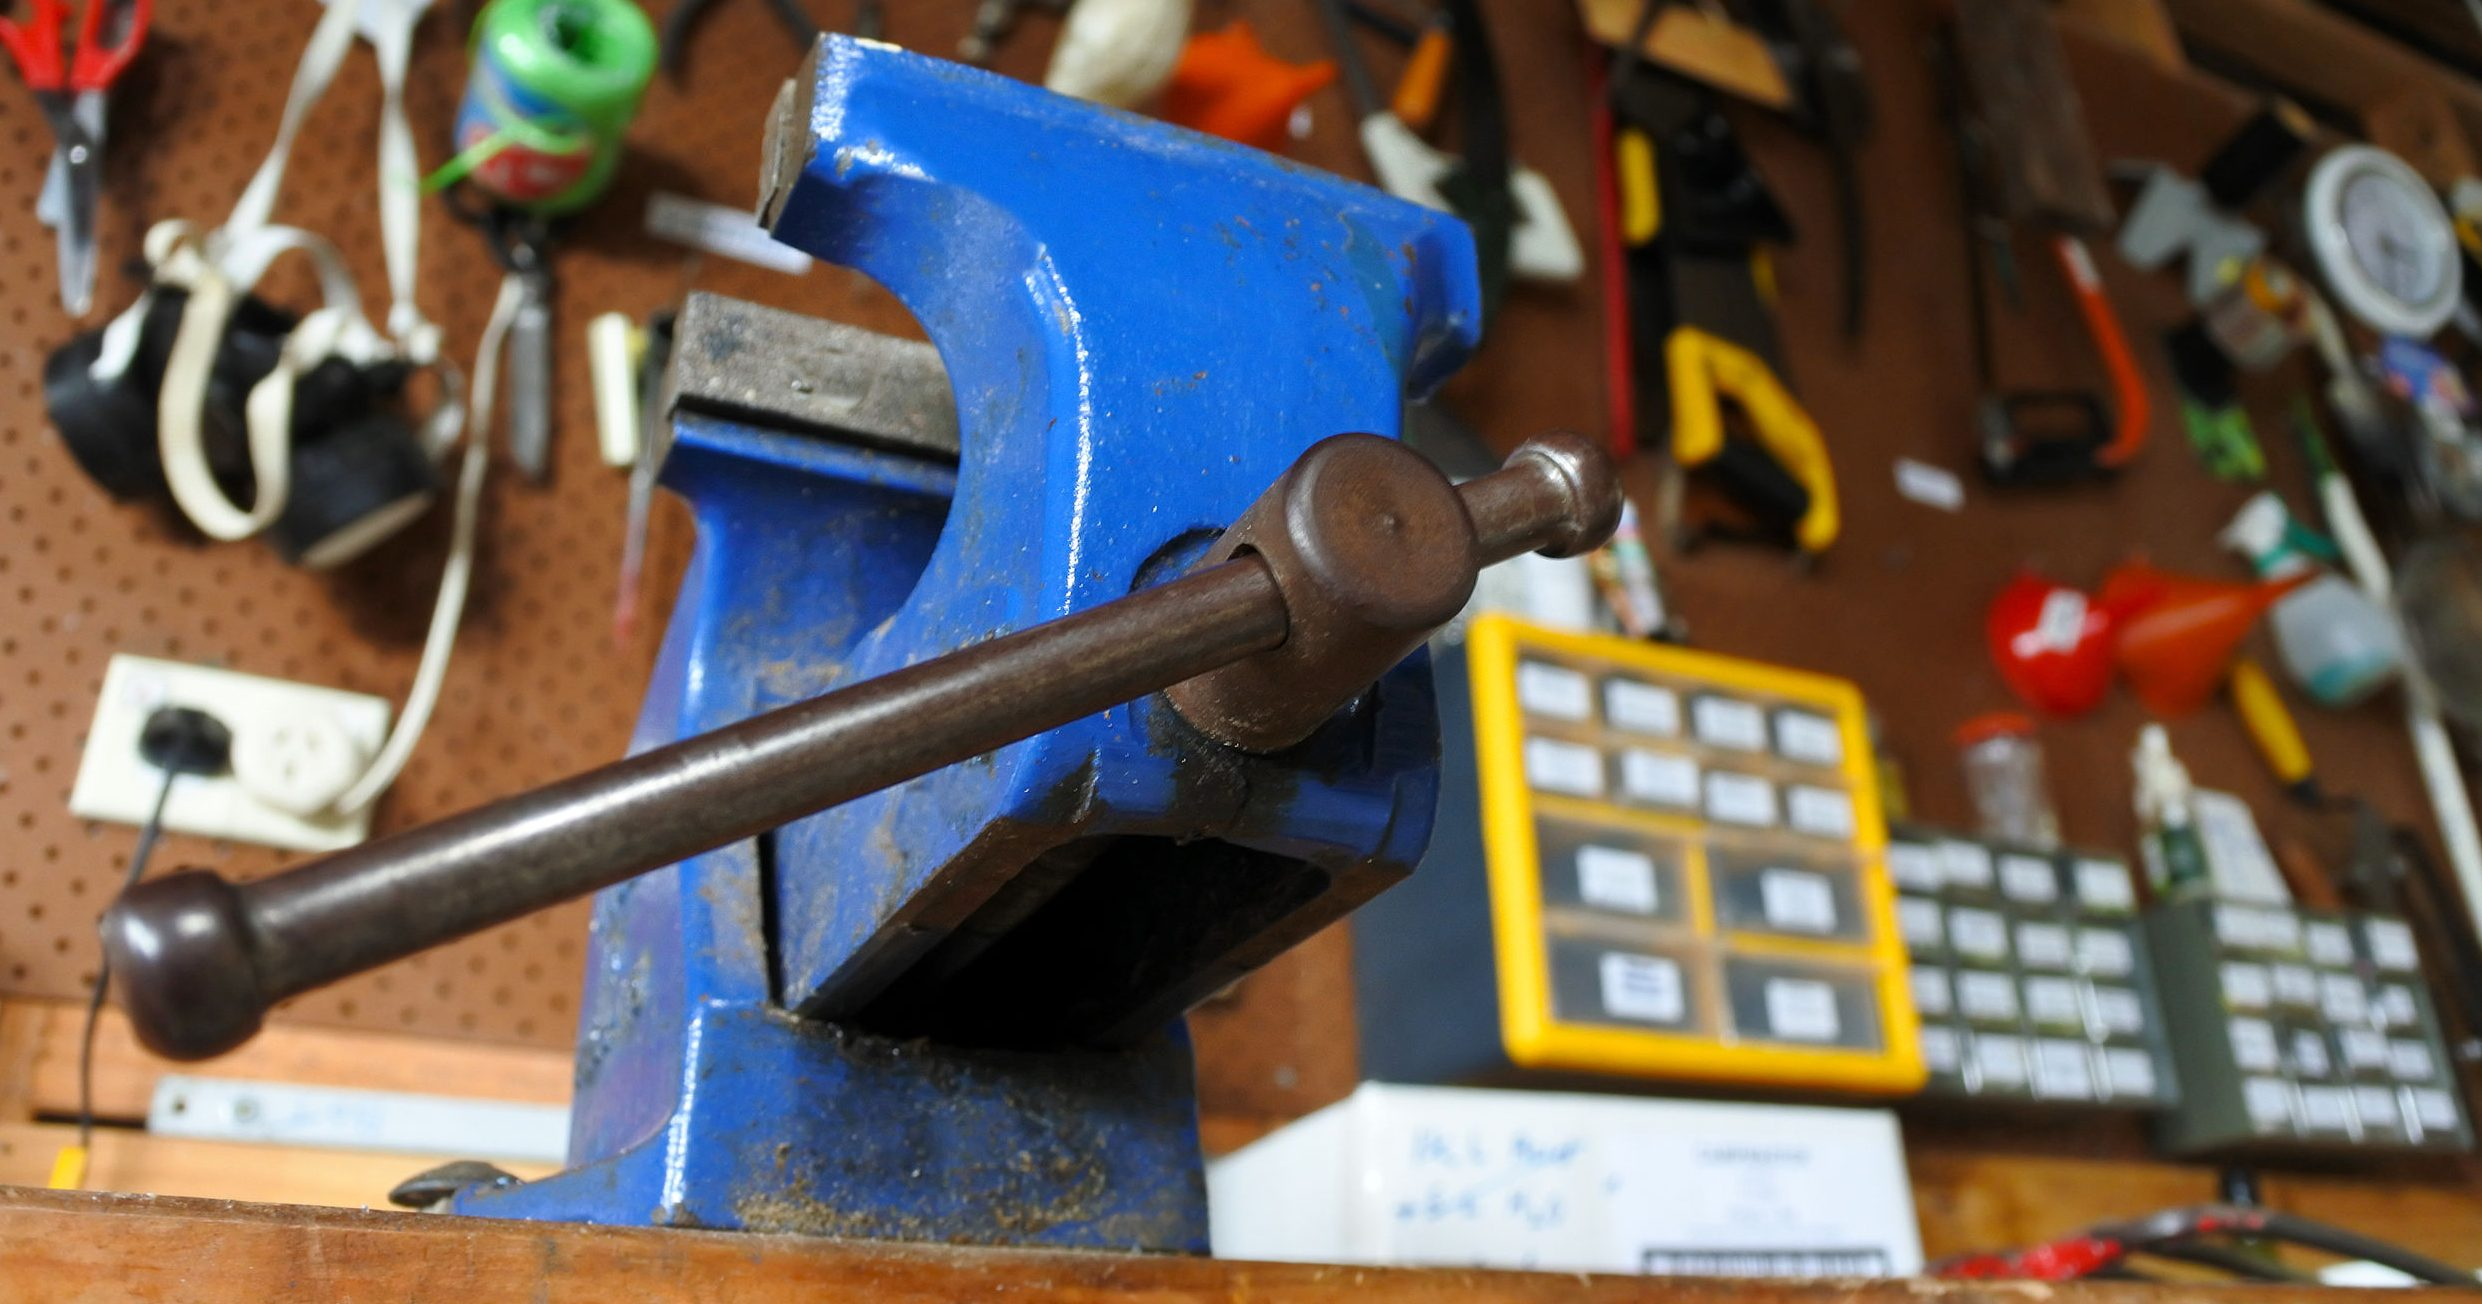 A blue vise in aworkshop, a mechanical apparatus used to secure an object to allow work to be performed on it.